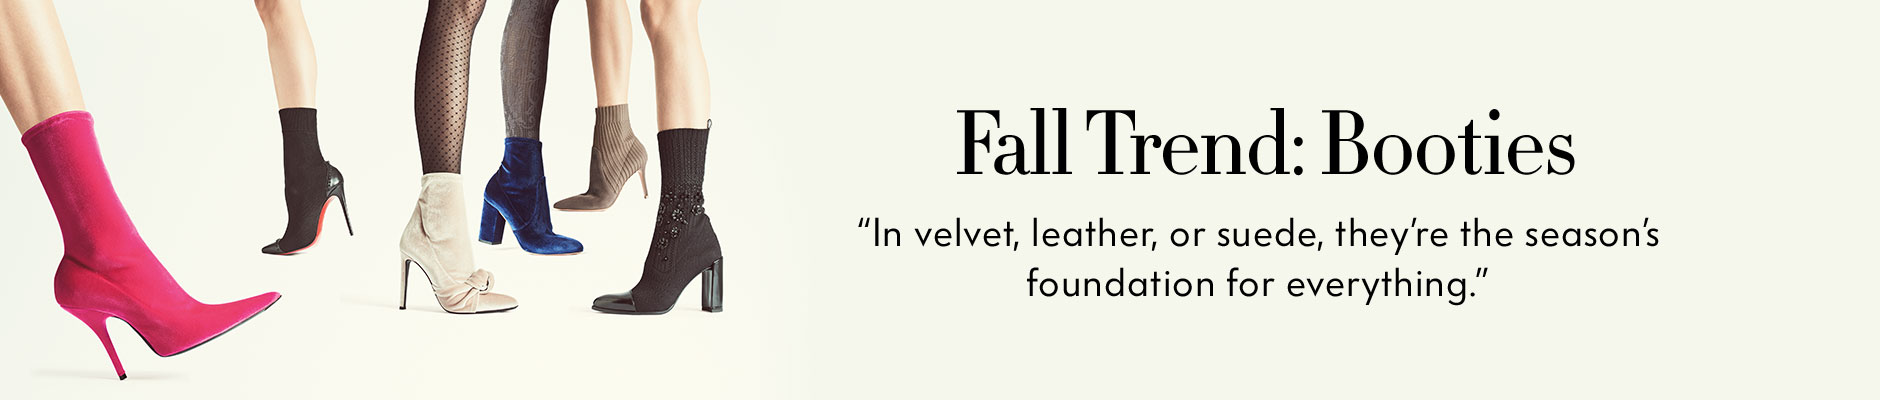 Fall Trend: Booties - In velvet, leather, or suede, they???re the season???s foundation for everything.